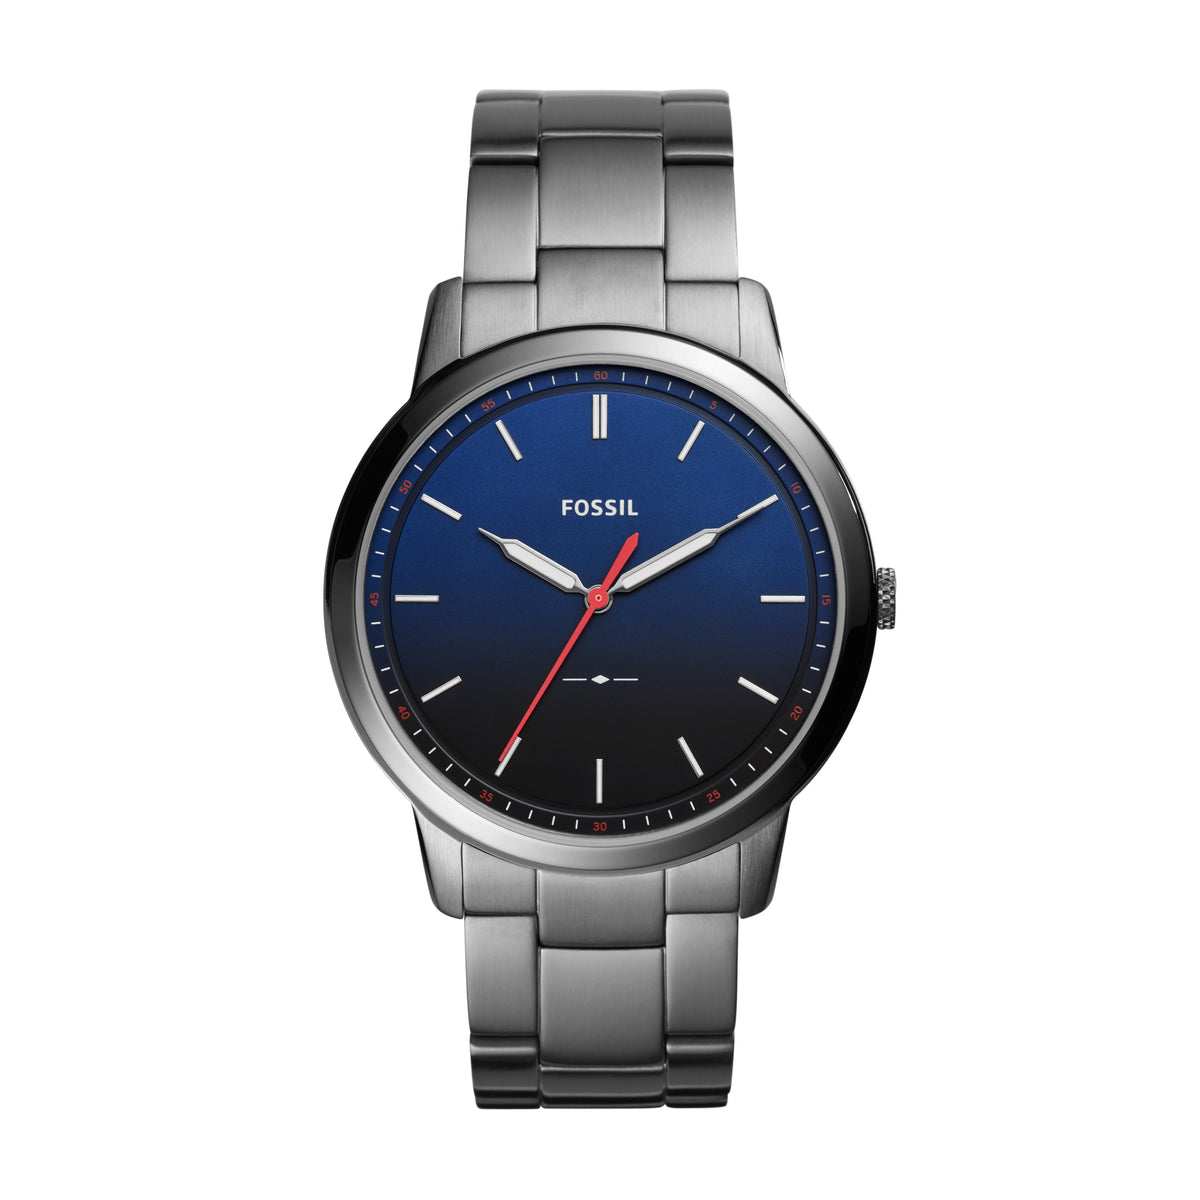 Fossil Watch - The Minimalist Slim Three Hand Stainless Steel Watch